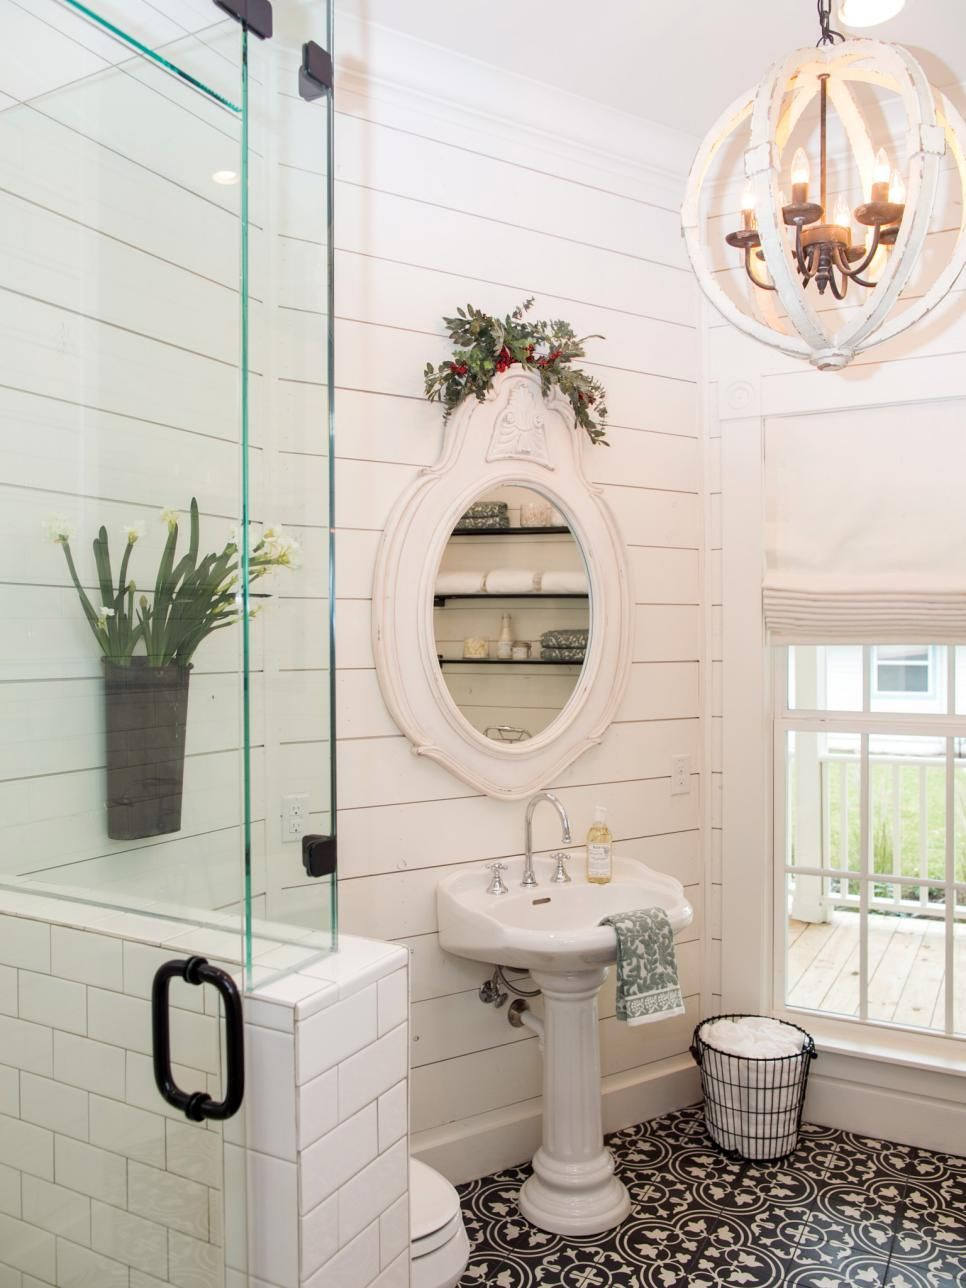 Bathroom Remodel Joanna Gaines season 4 episode 1 | house seasons, joanna gaines and magnolia